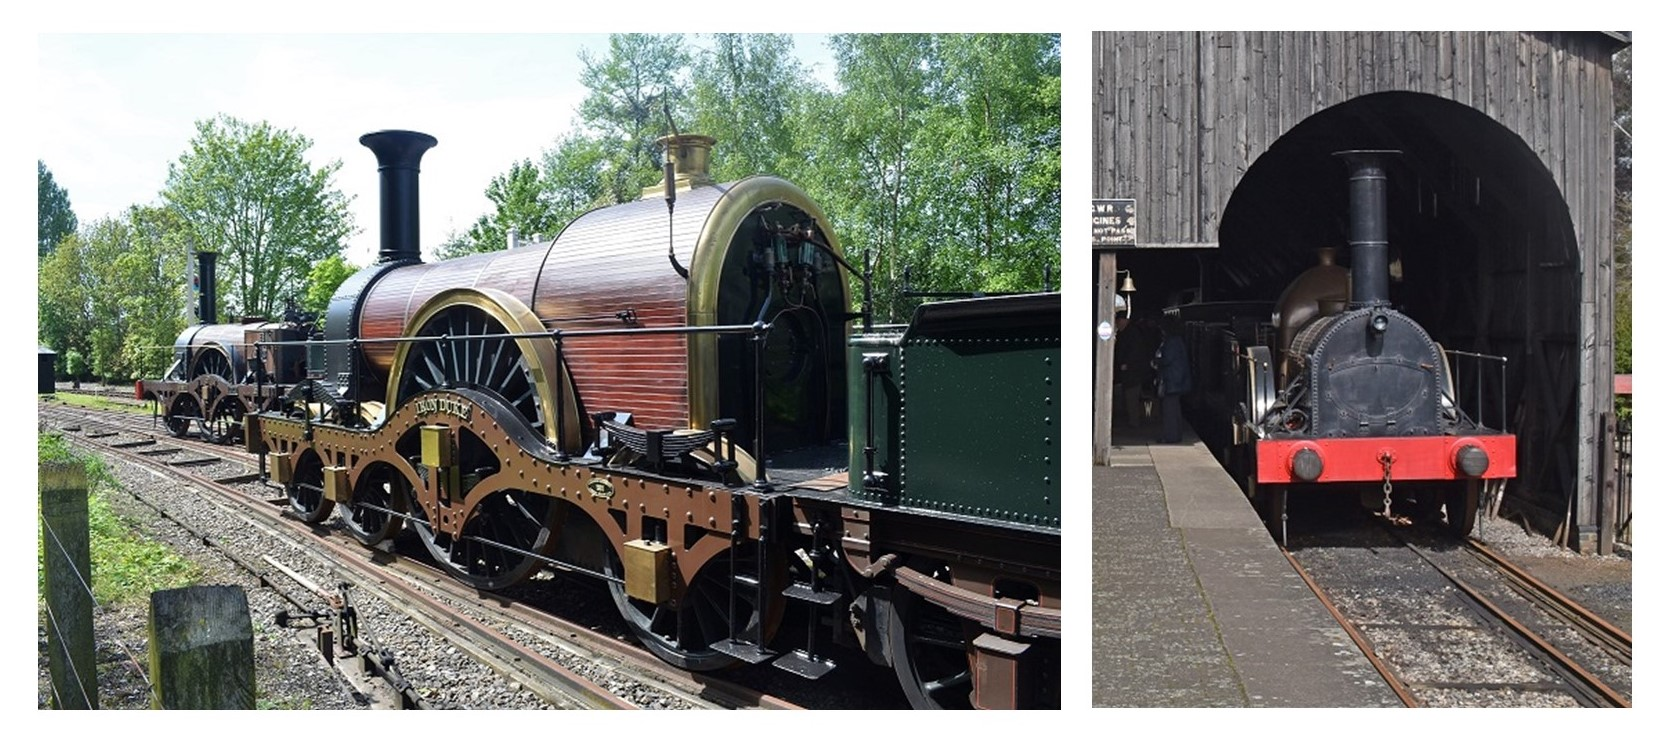 Two current photographs of broad gauge trains in use